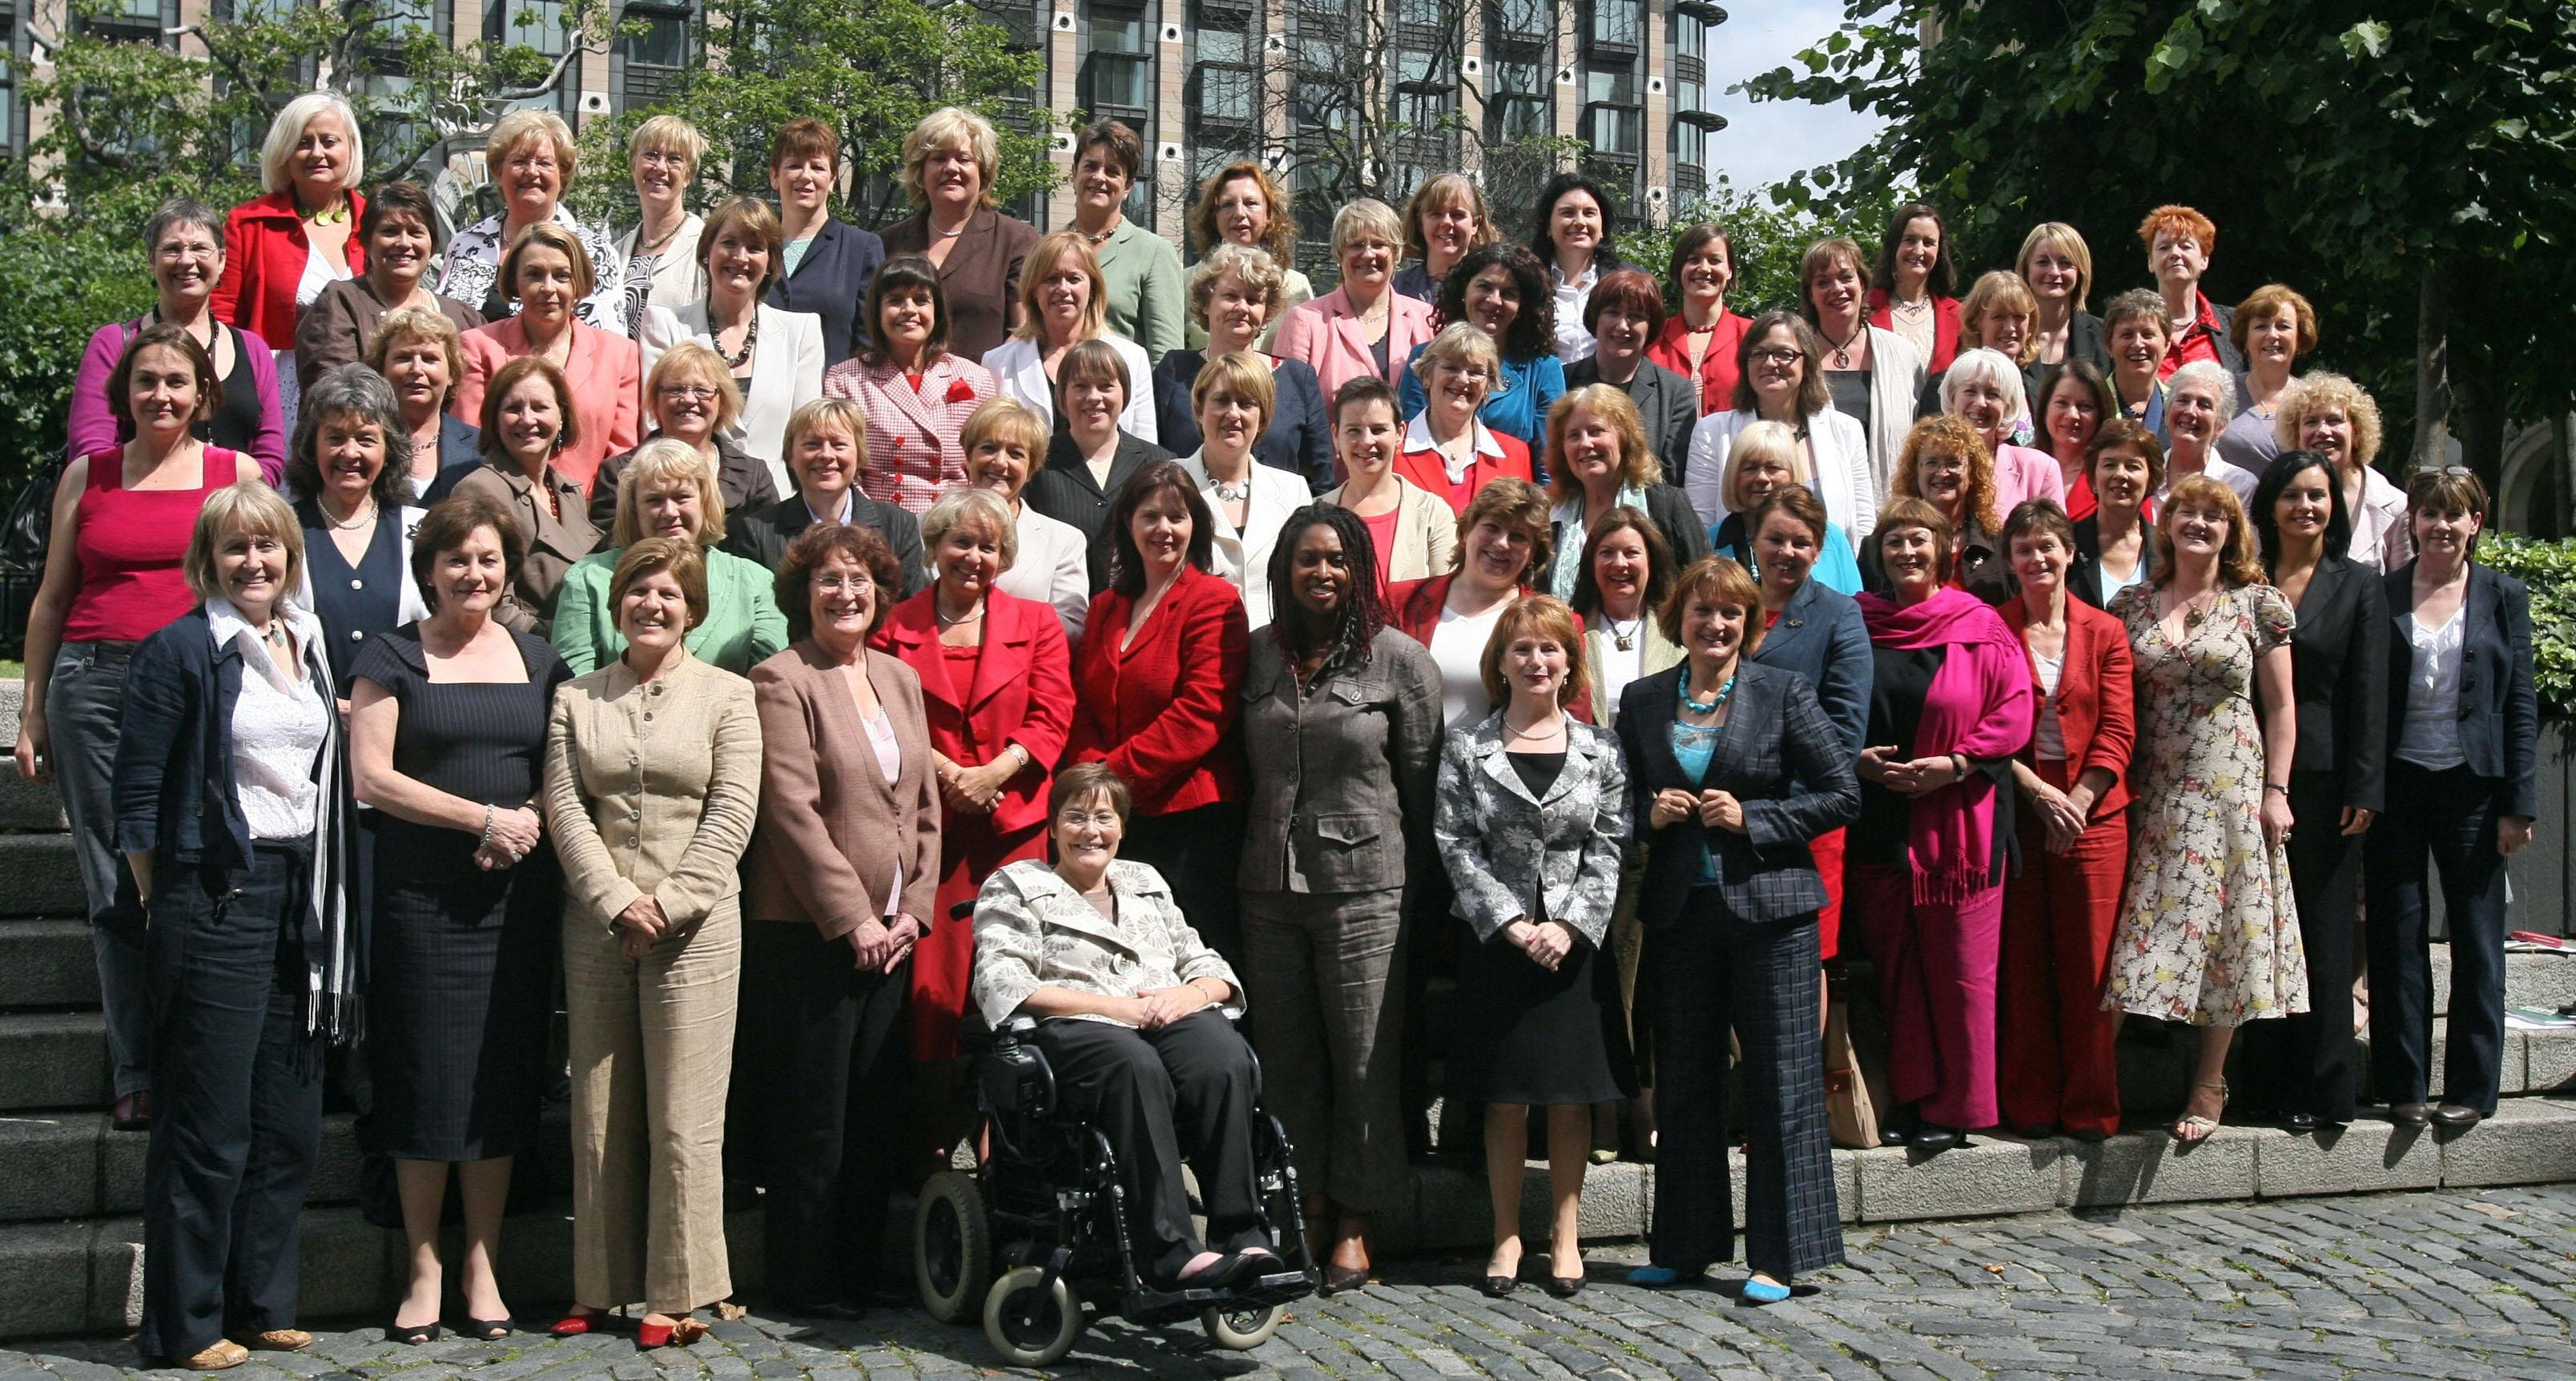 A historic group picture of some of Labour's women MP's outside